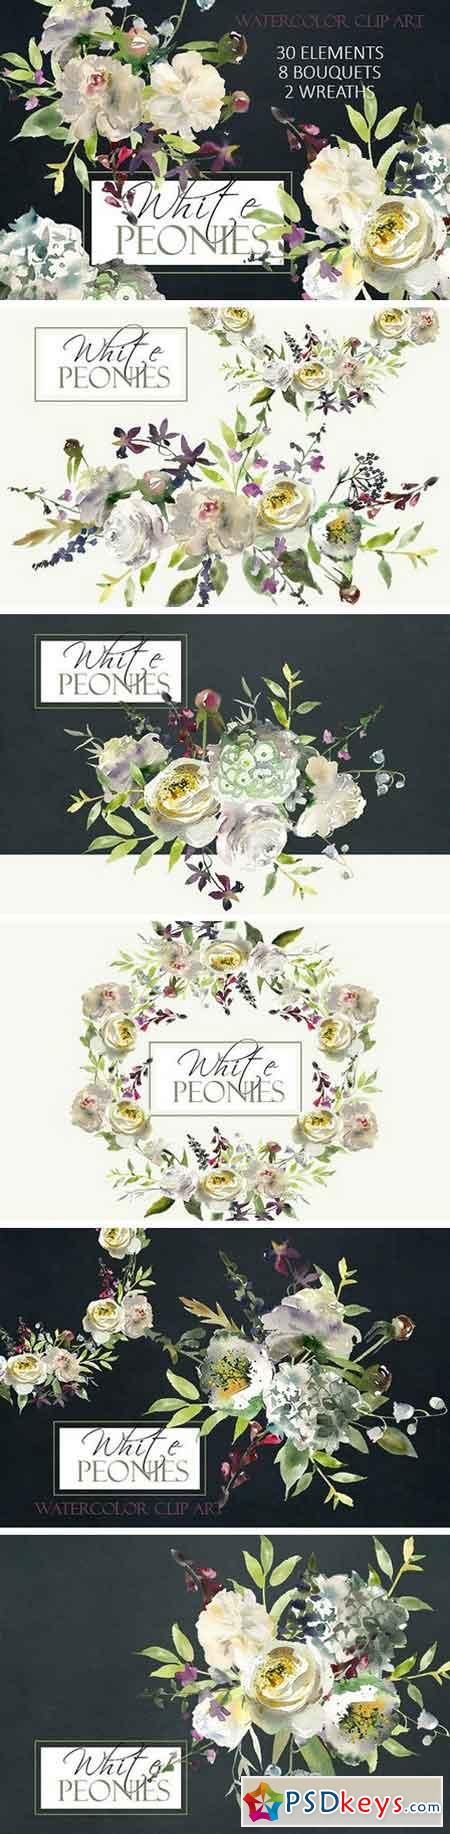 Watercolor White Flowers Clipart 983330